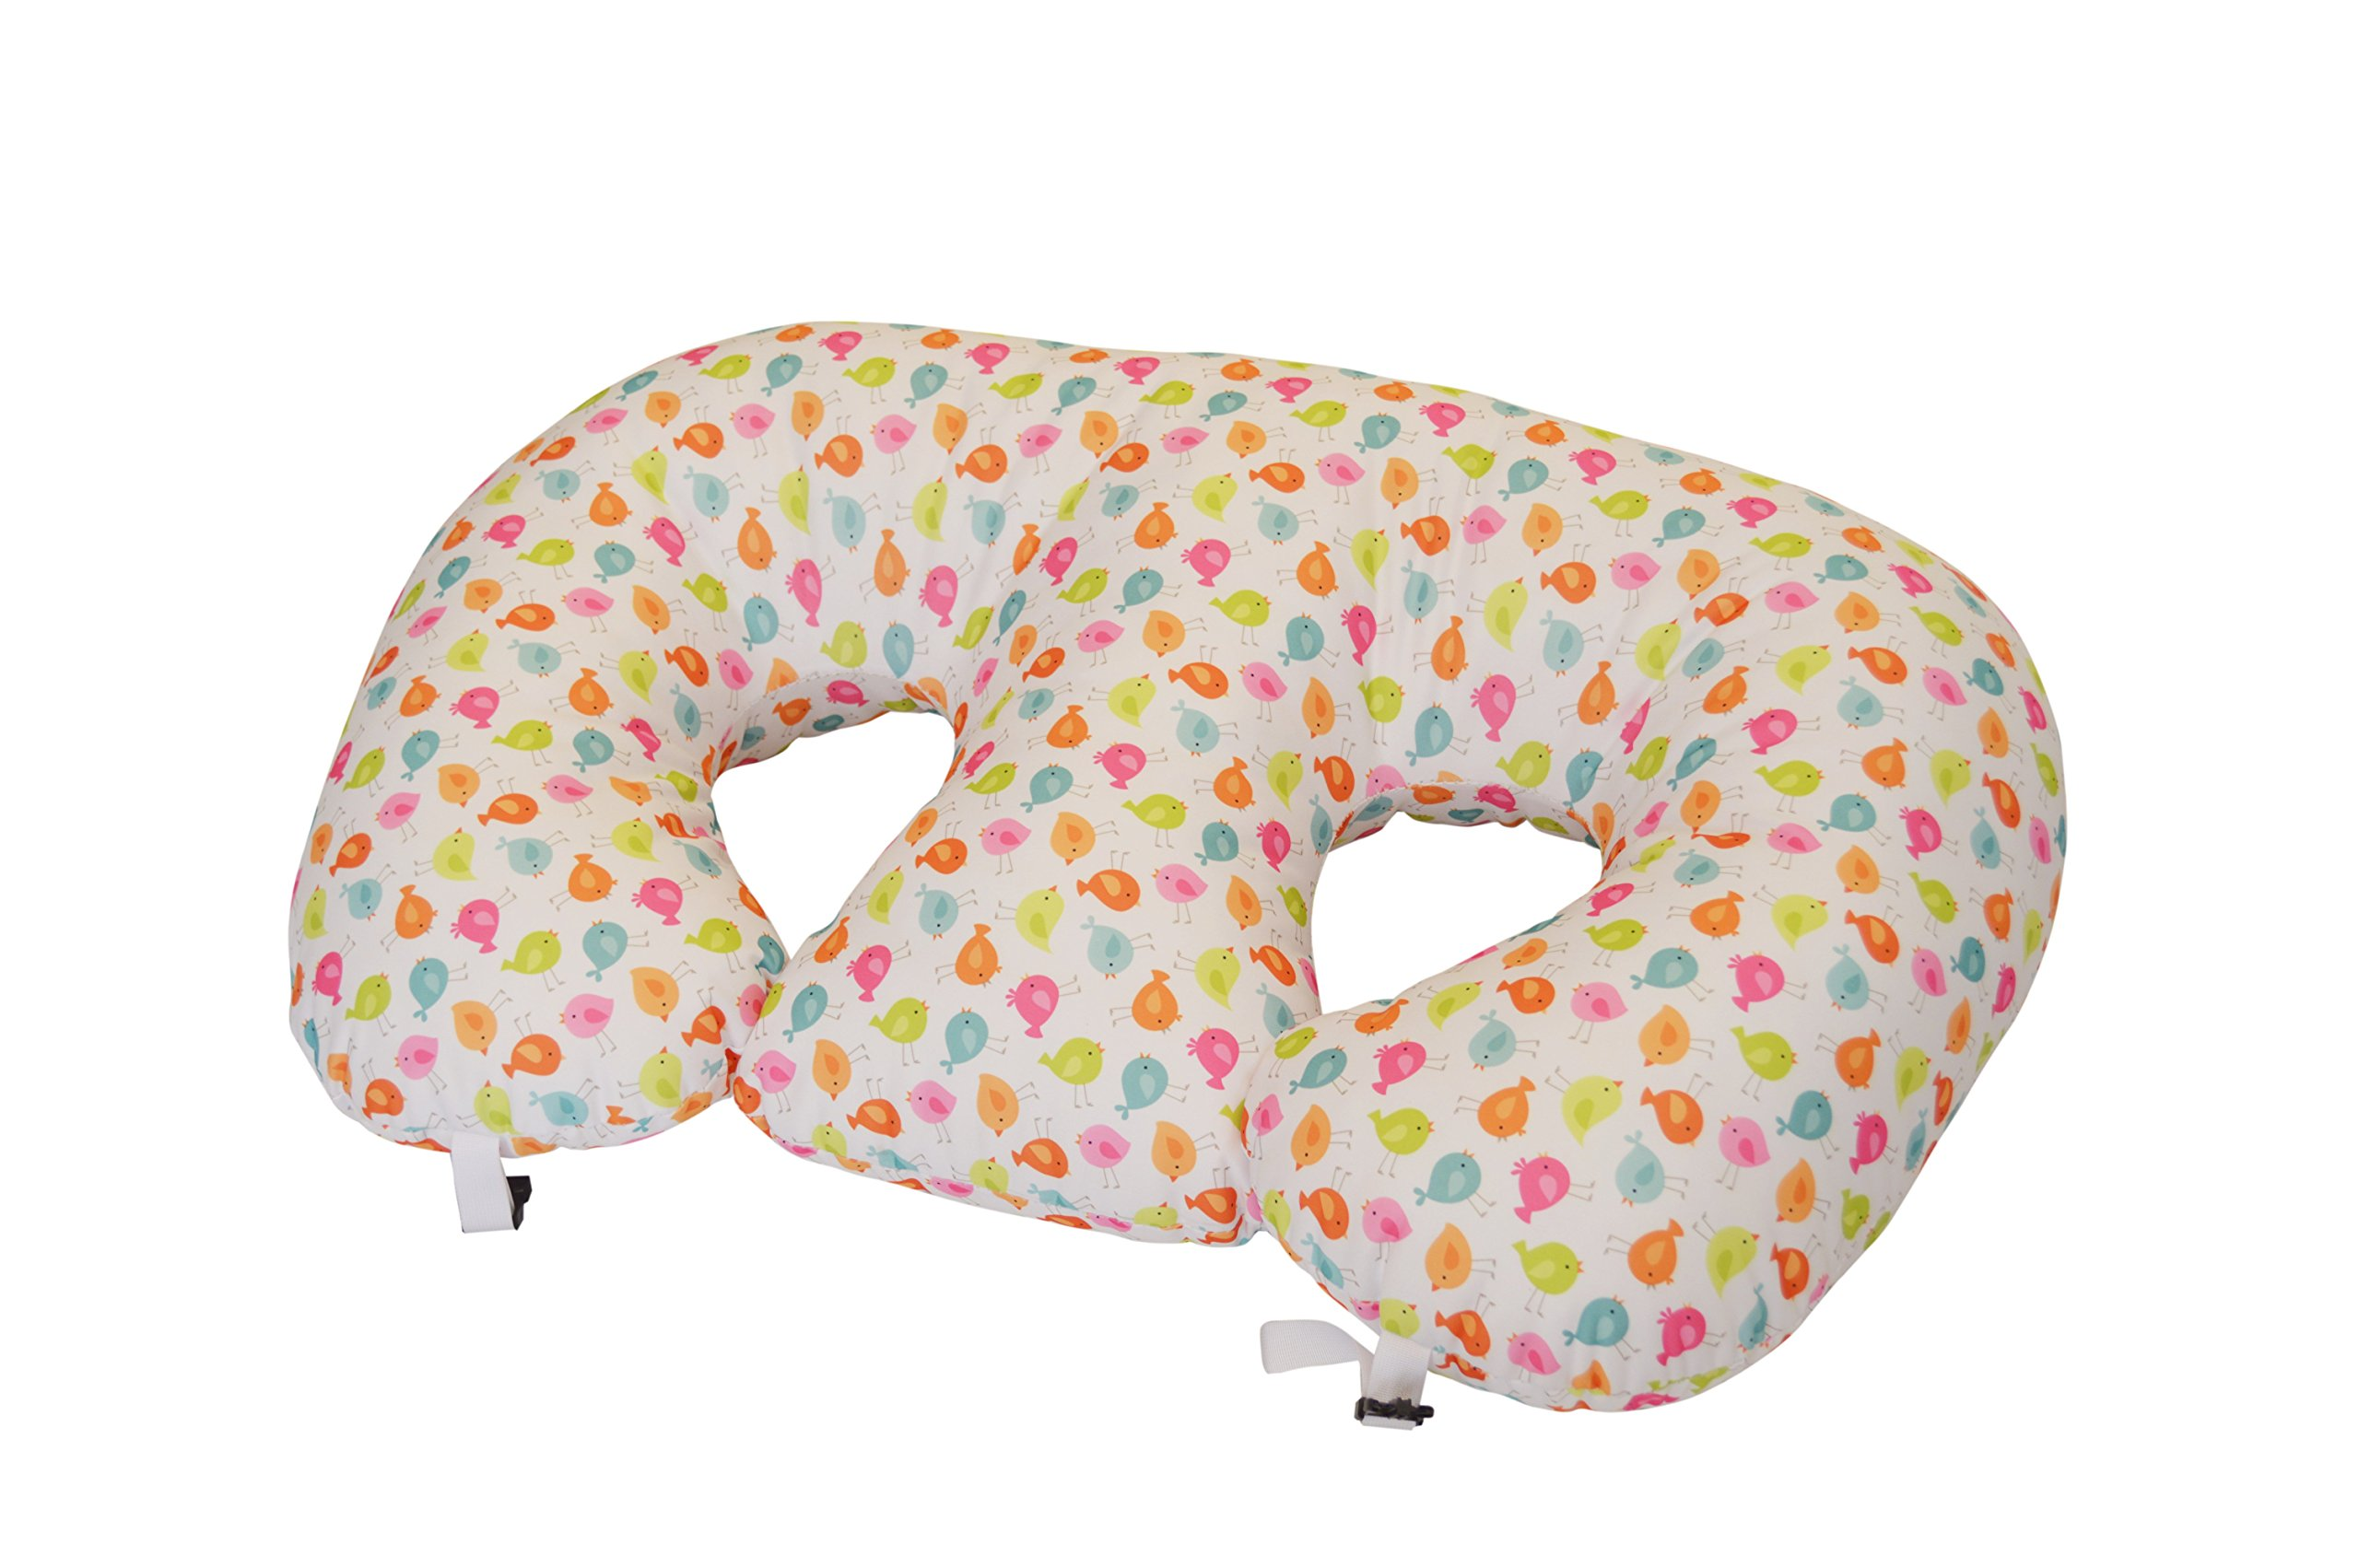 THE TWIN Z PILLOW - Waterproof BIRDIES Pillow - The only 6 in 1 Twin Pillow Breastfeeding, Bottlefeeding, Tummy Time & Support! A MUST HAVE FOR TWINS! - No extra cover by Twin Z PIllow (Image #1)